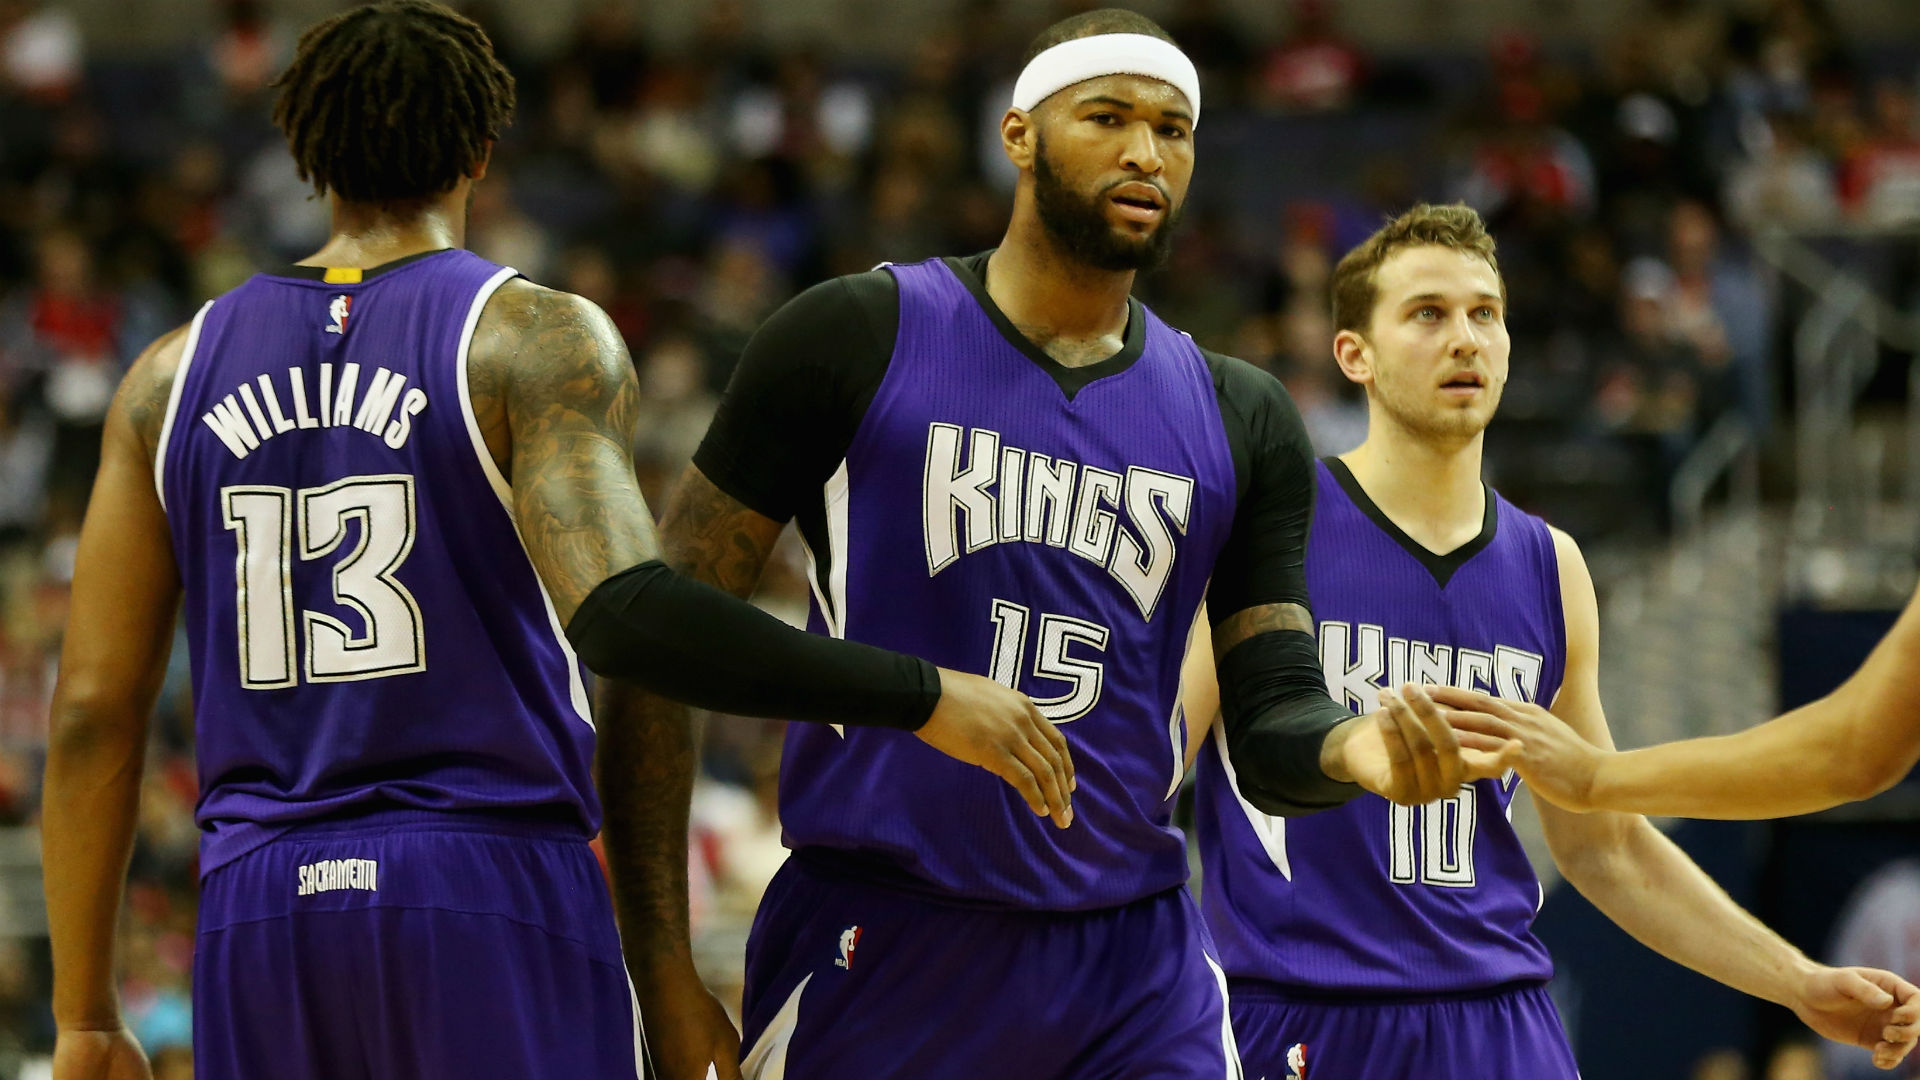 DeMarcus-Cousins-032315-GETTY-FTR